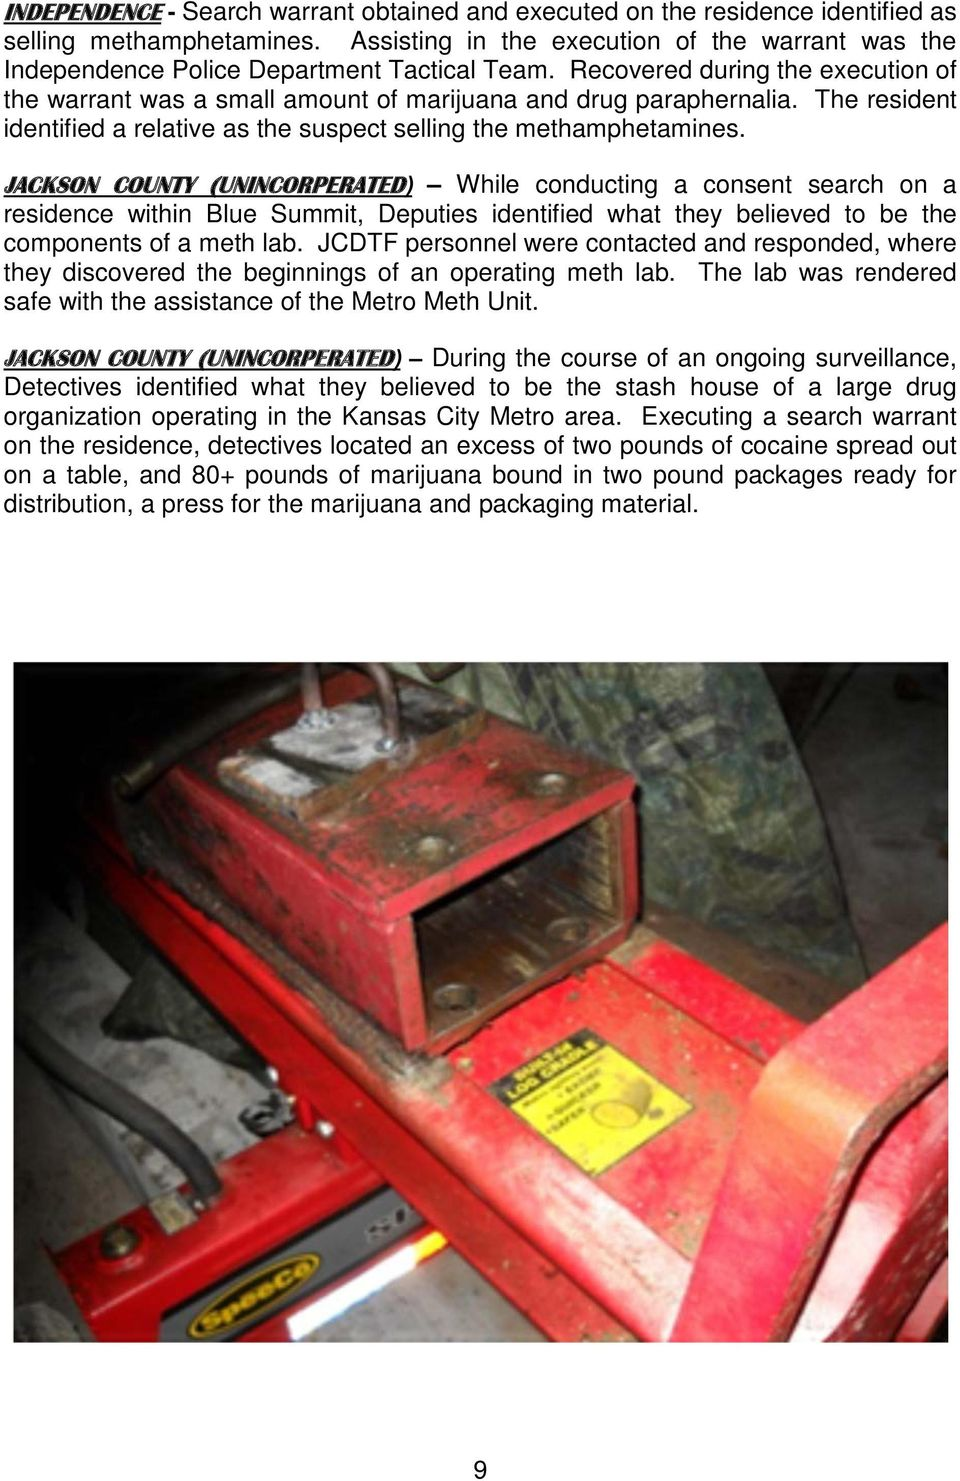 The pictures within this Report are items recovered, seized or